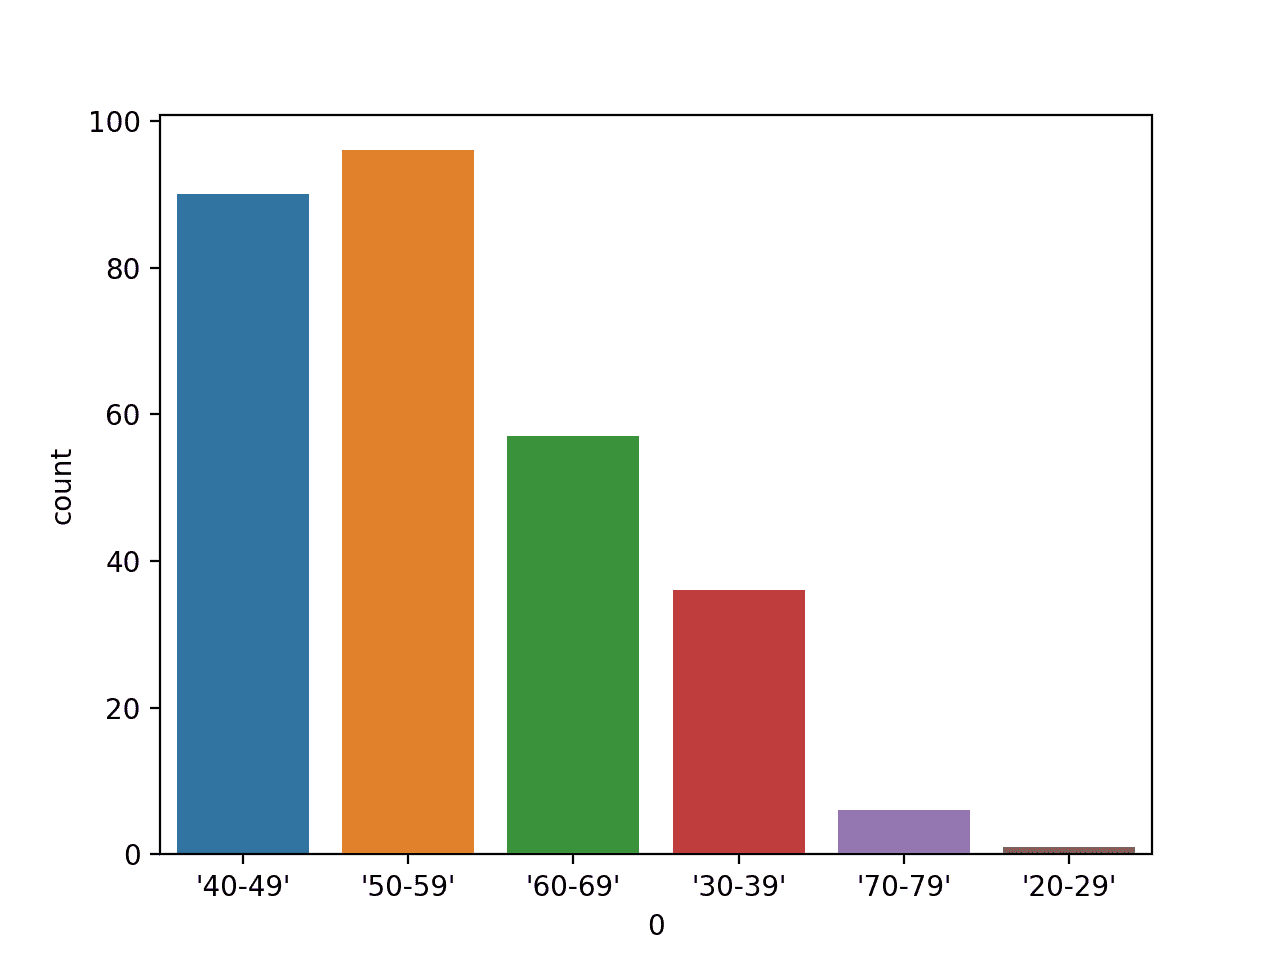 Bar Chart Plot of Age Range Categorical Variable